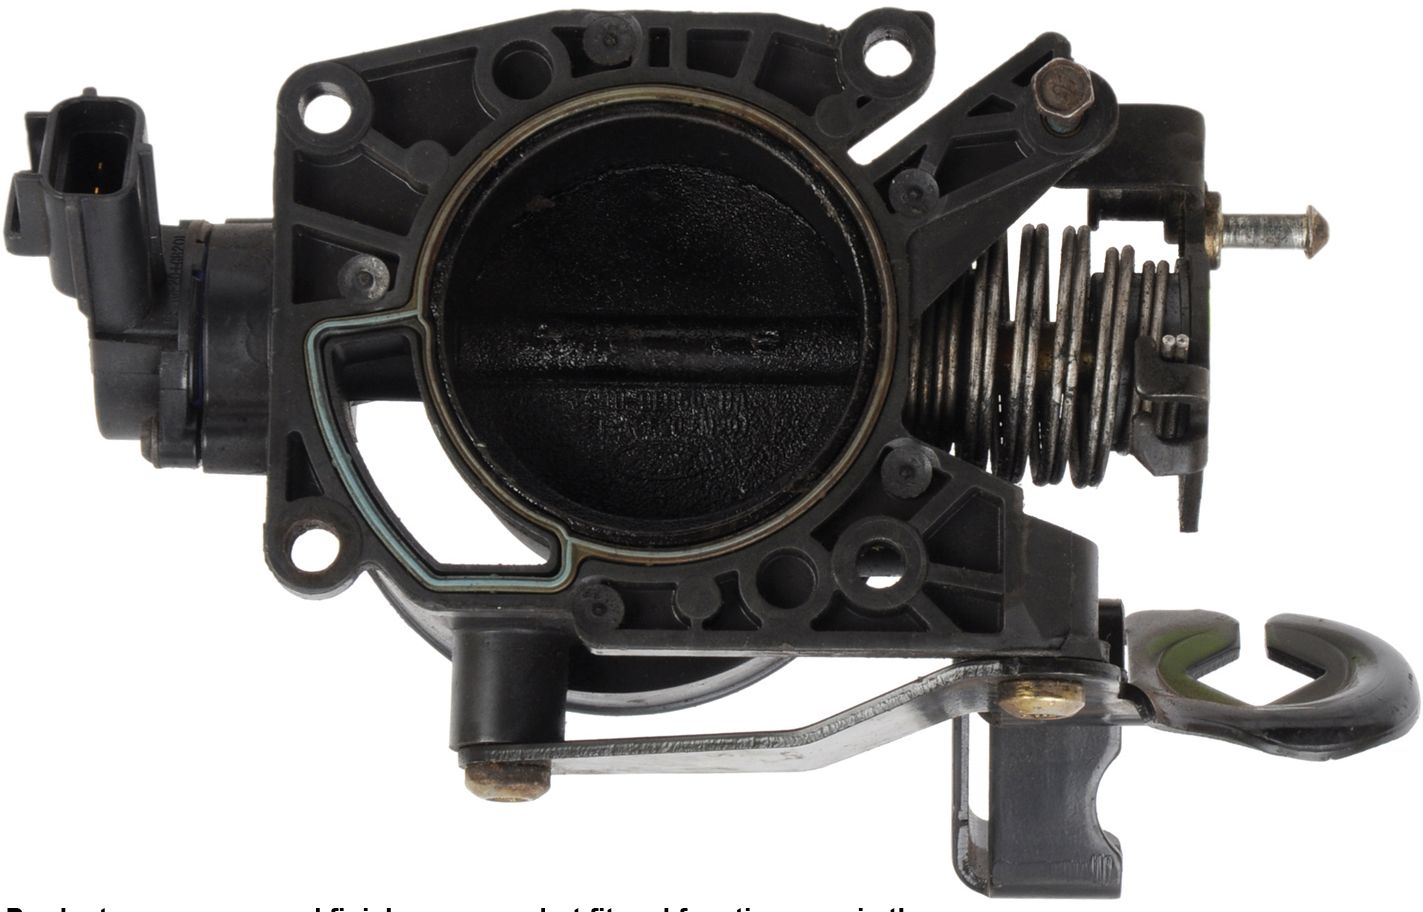 2002 Ford Focus Fuel Injection Throttle Body Cardone 67-1003